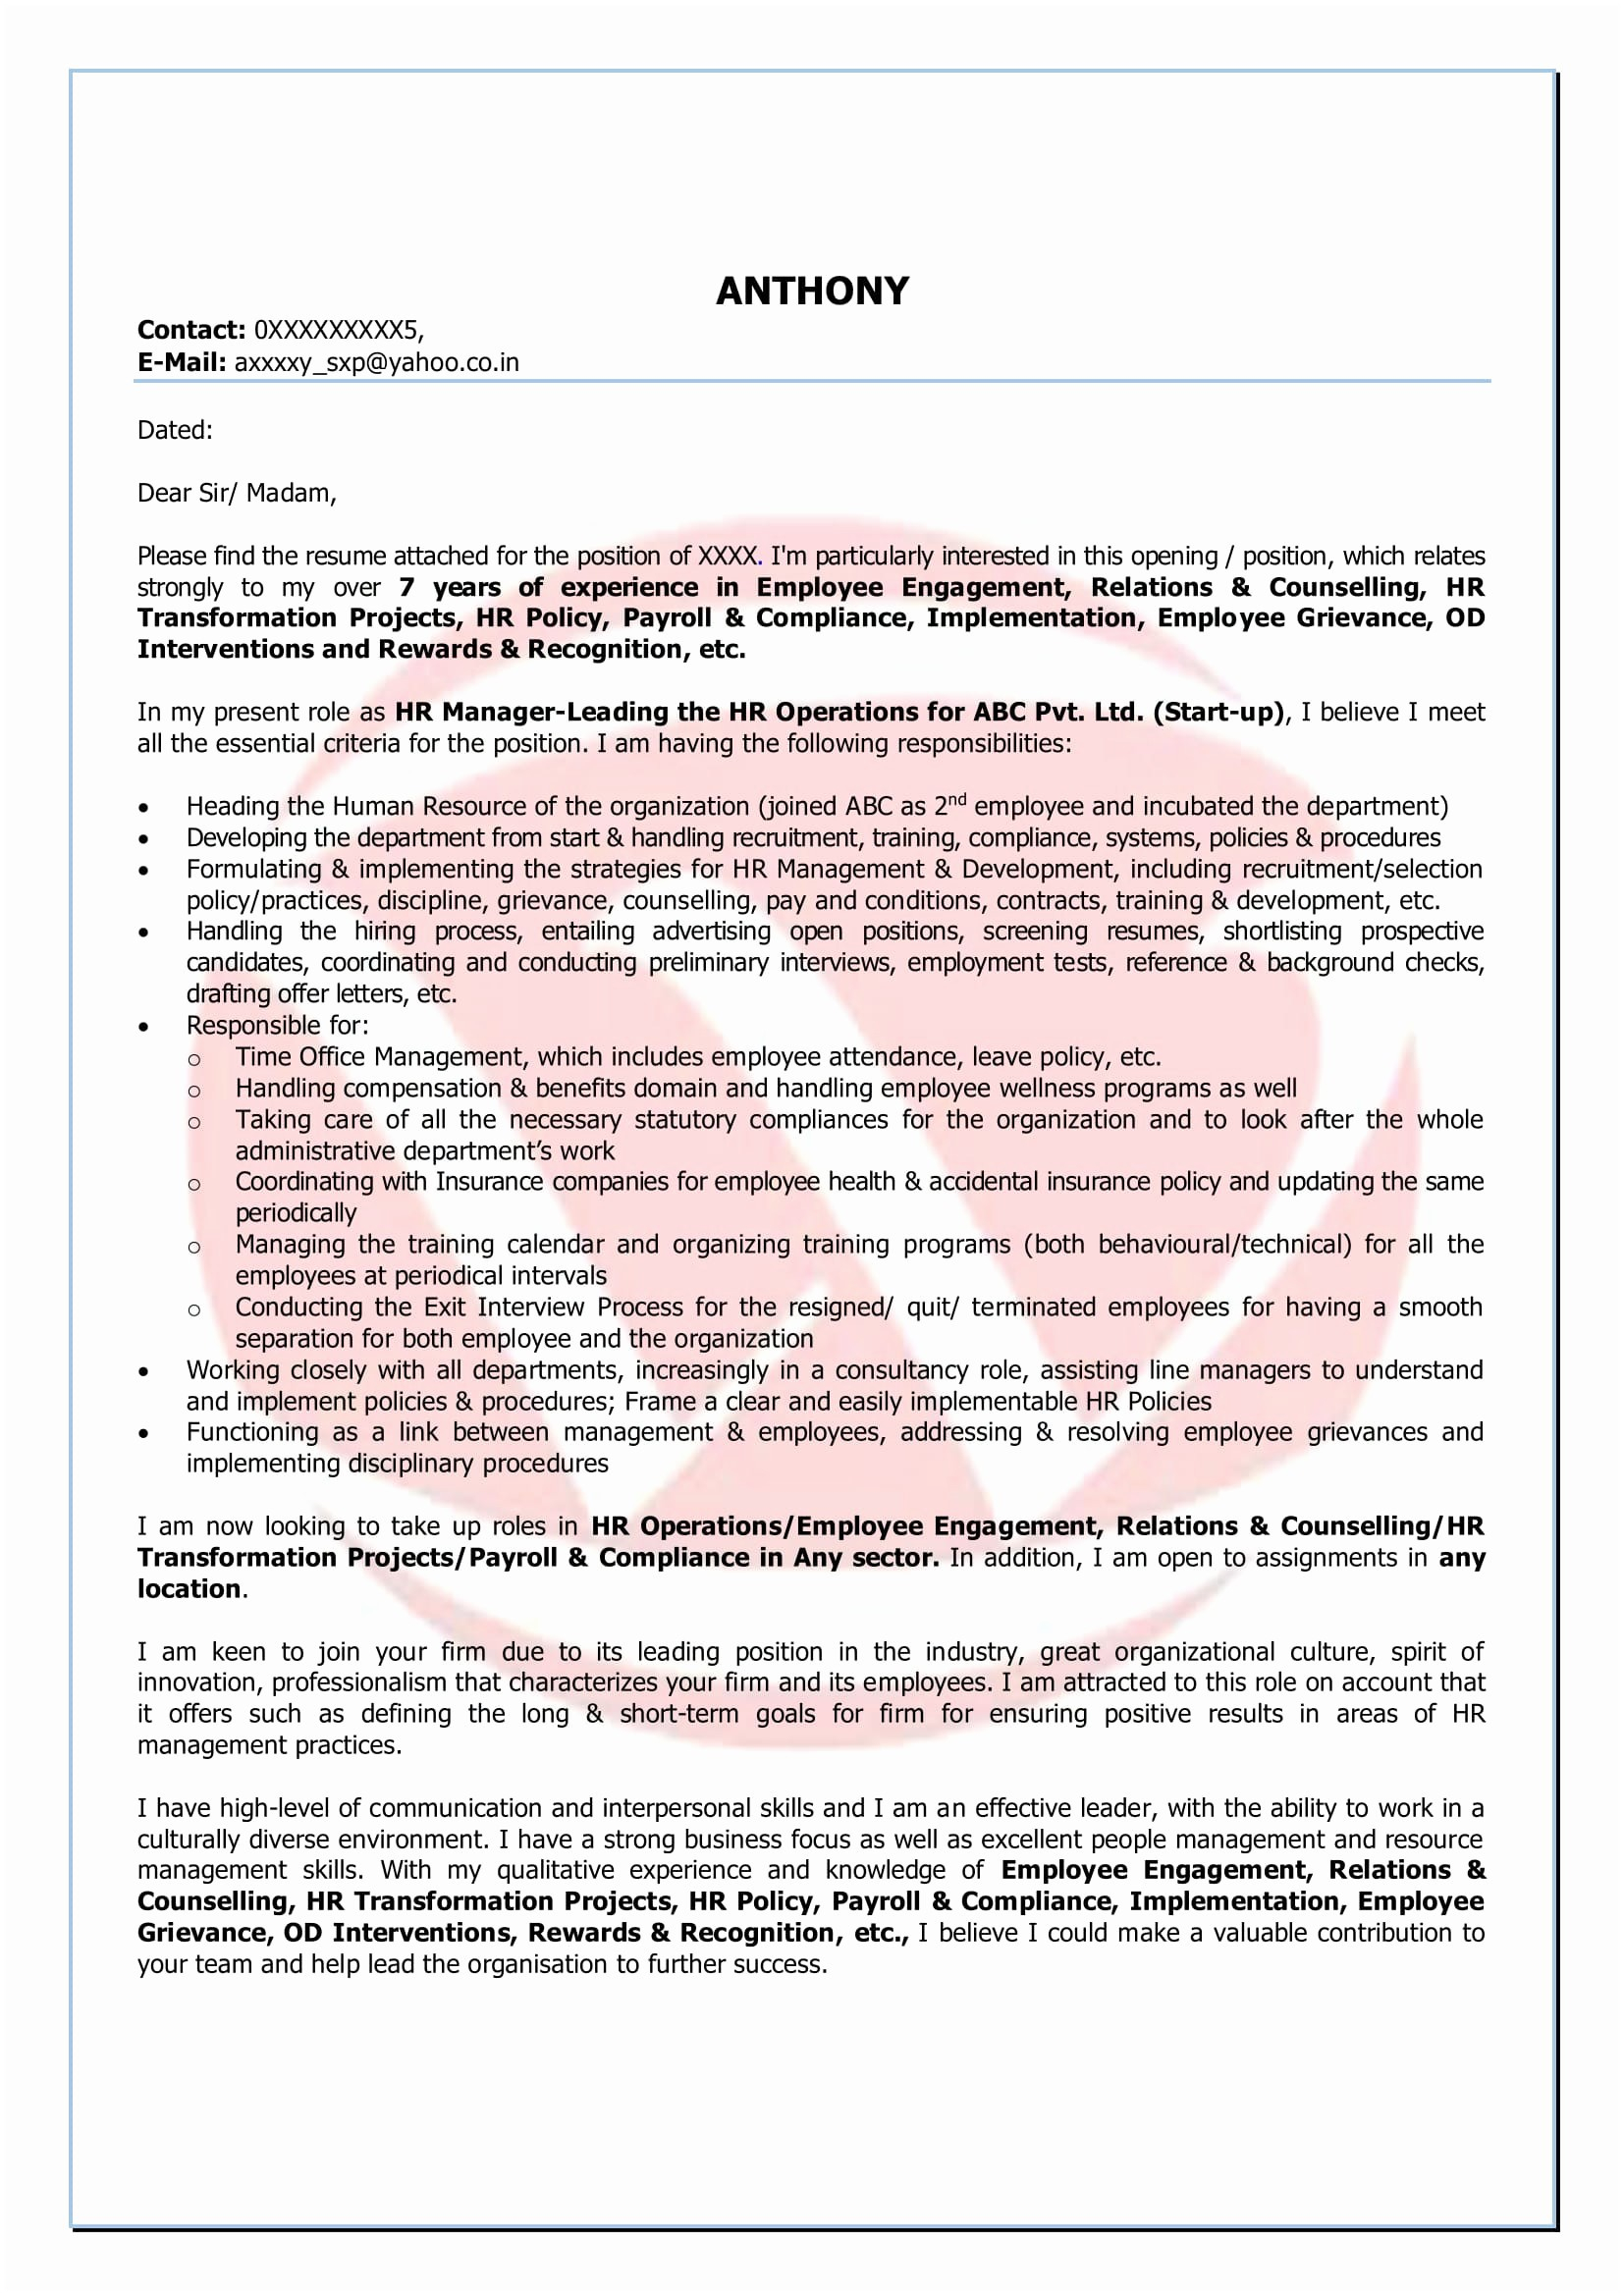 Certified Mail Letter Template - How to Write A Certified Letter Writing A Cover Letter Examples Pdf